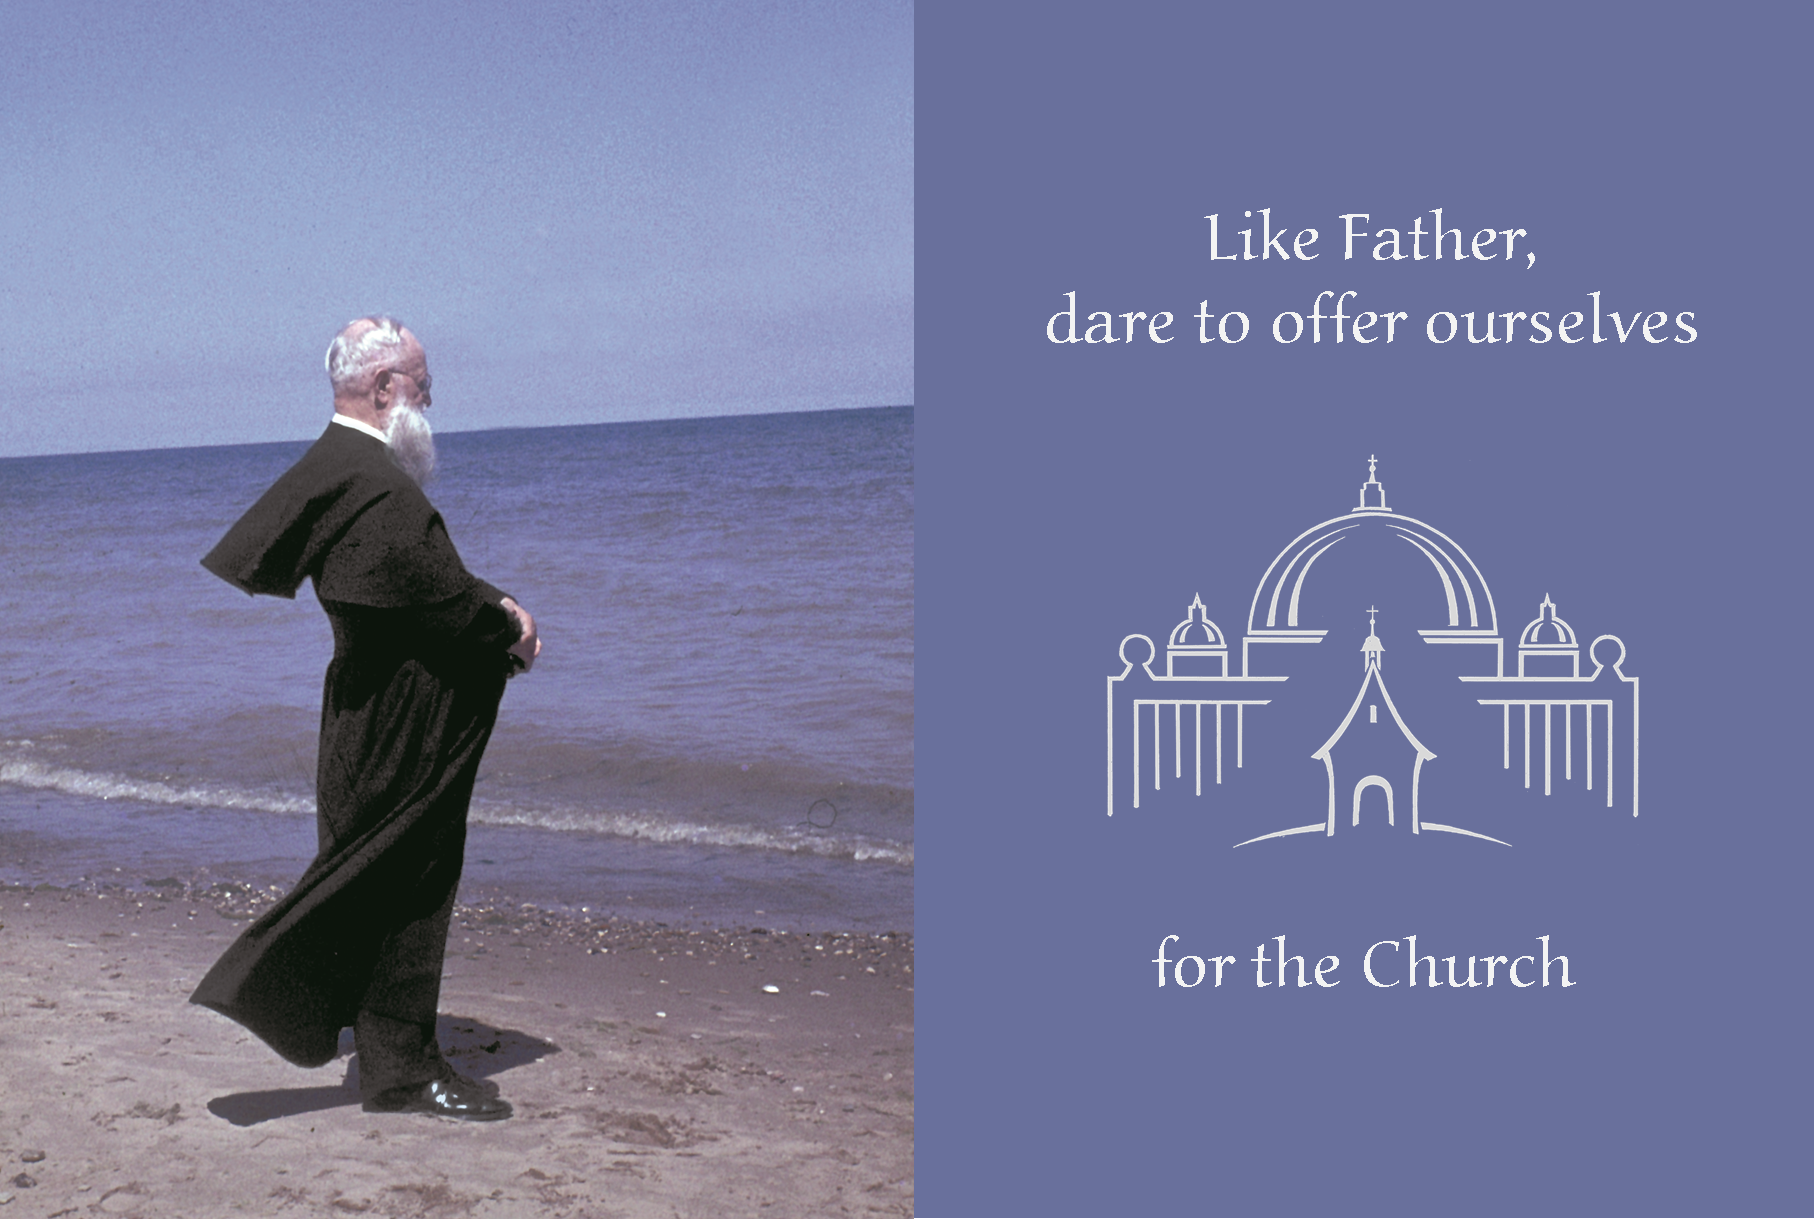 """Caritas urget nos … caritas Ecclesiae [Love for the Church urges us on].""  Father Joseph Kentenich"